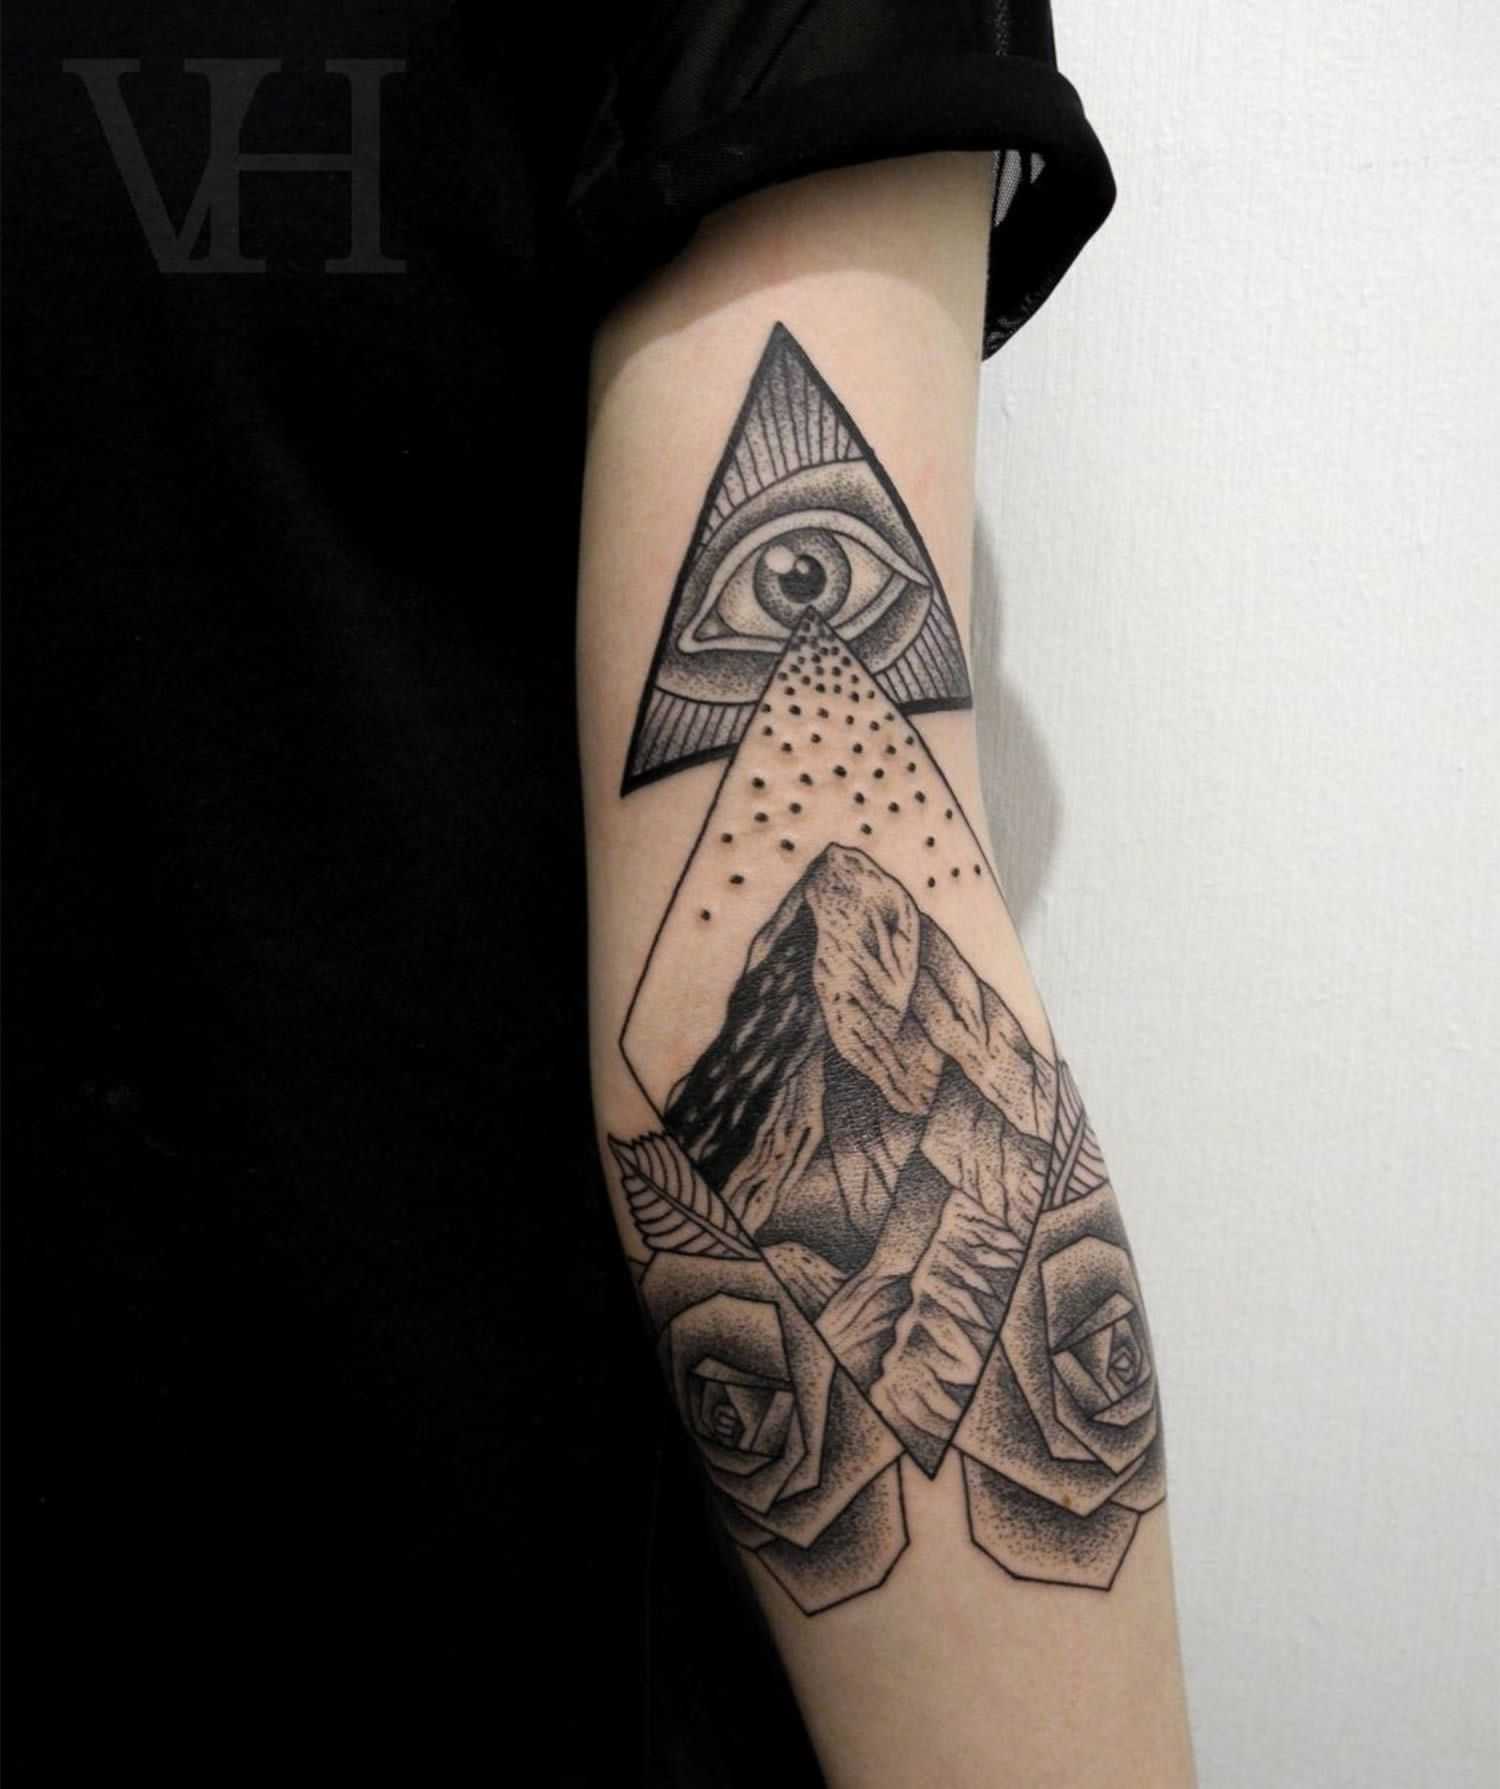 60 Eye Of Providence Tattoo Designs For Men – Manly Ink Ideas foto